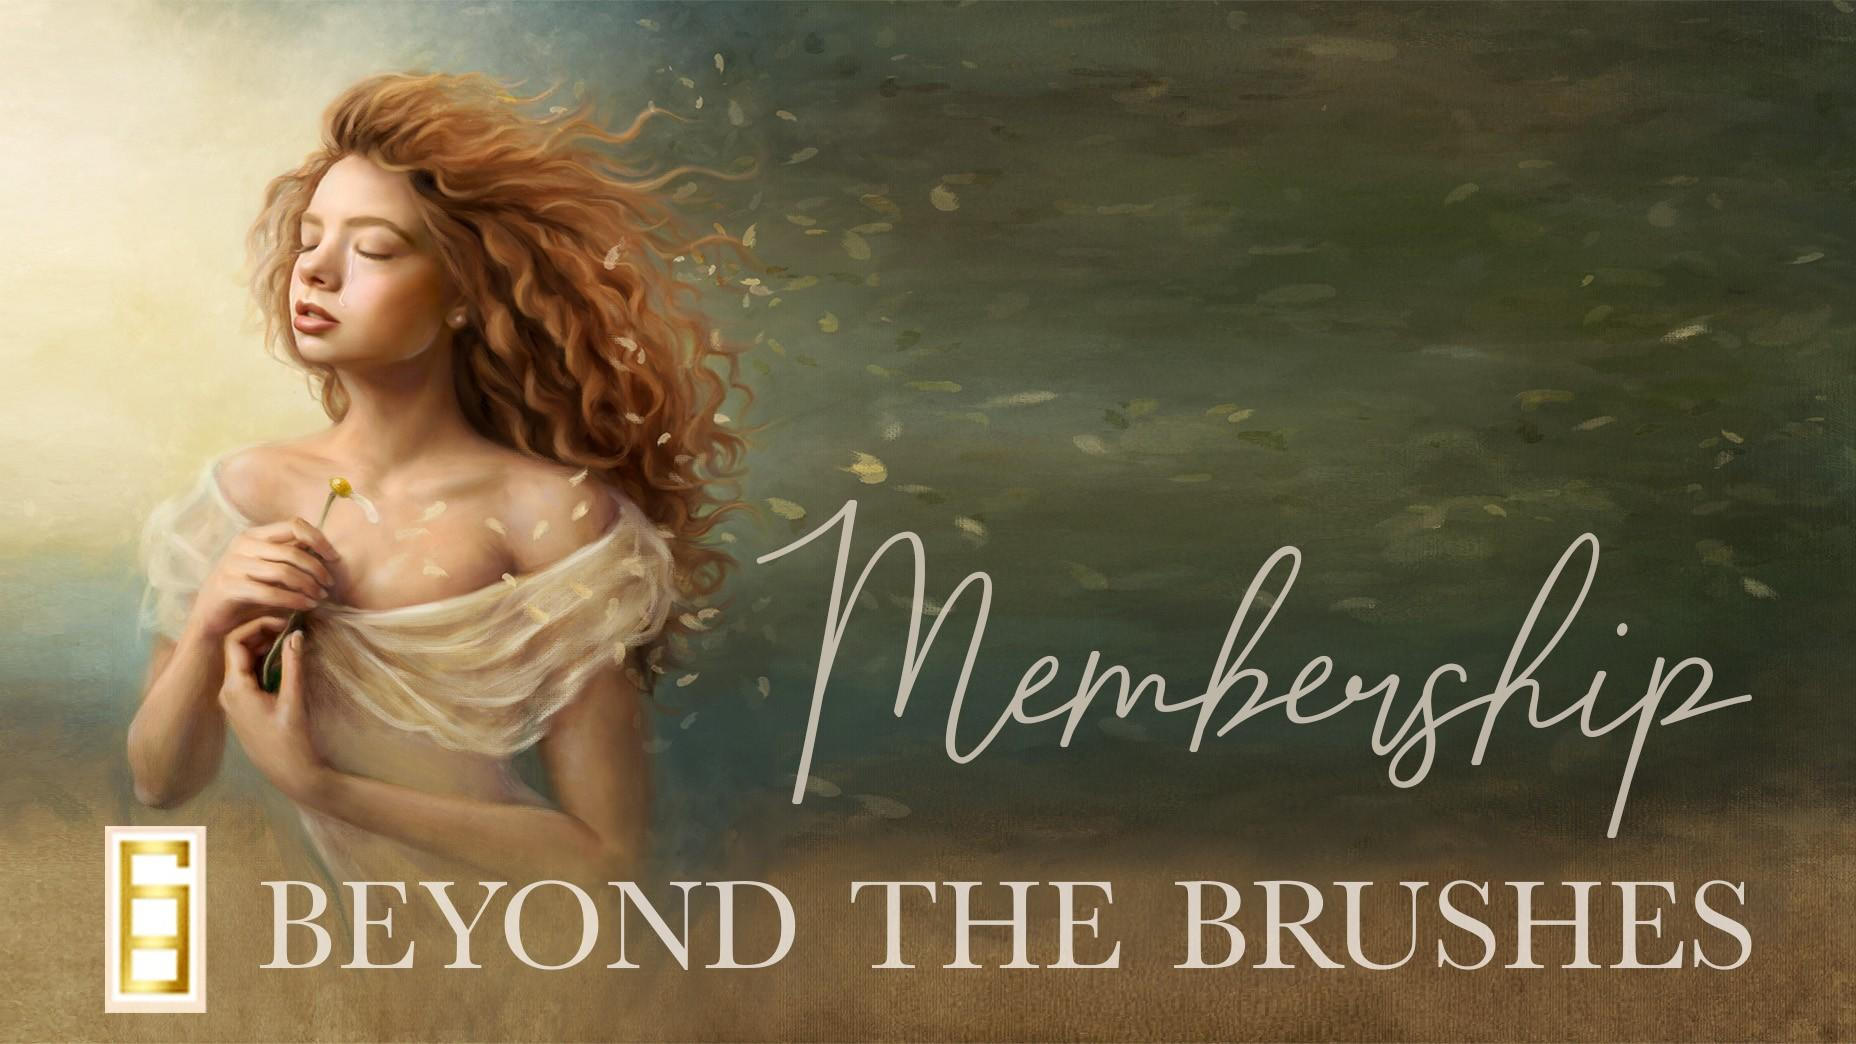 Learn to Paint in Photoshop - Beyond the Brushes